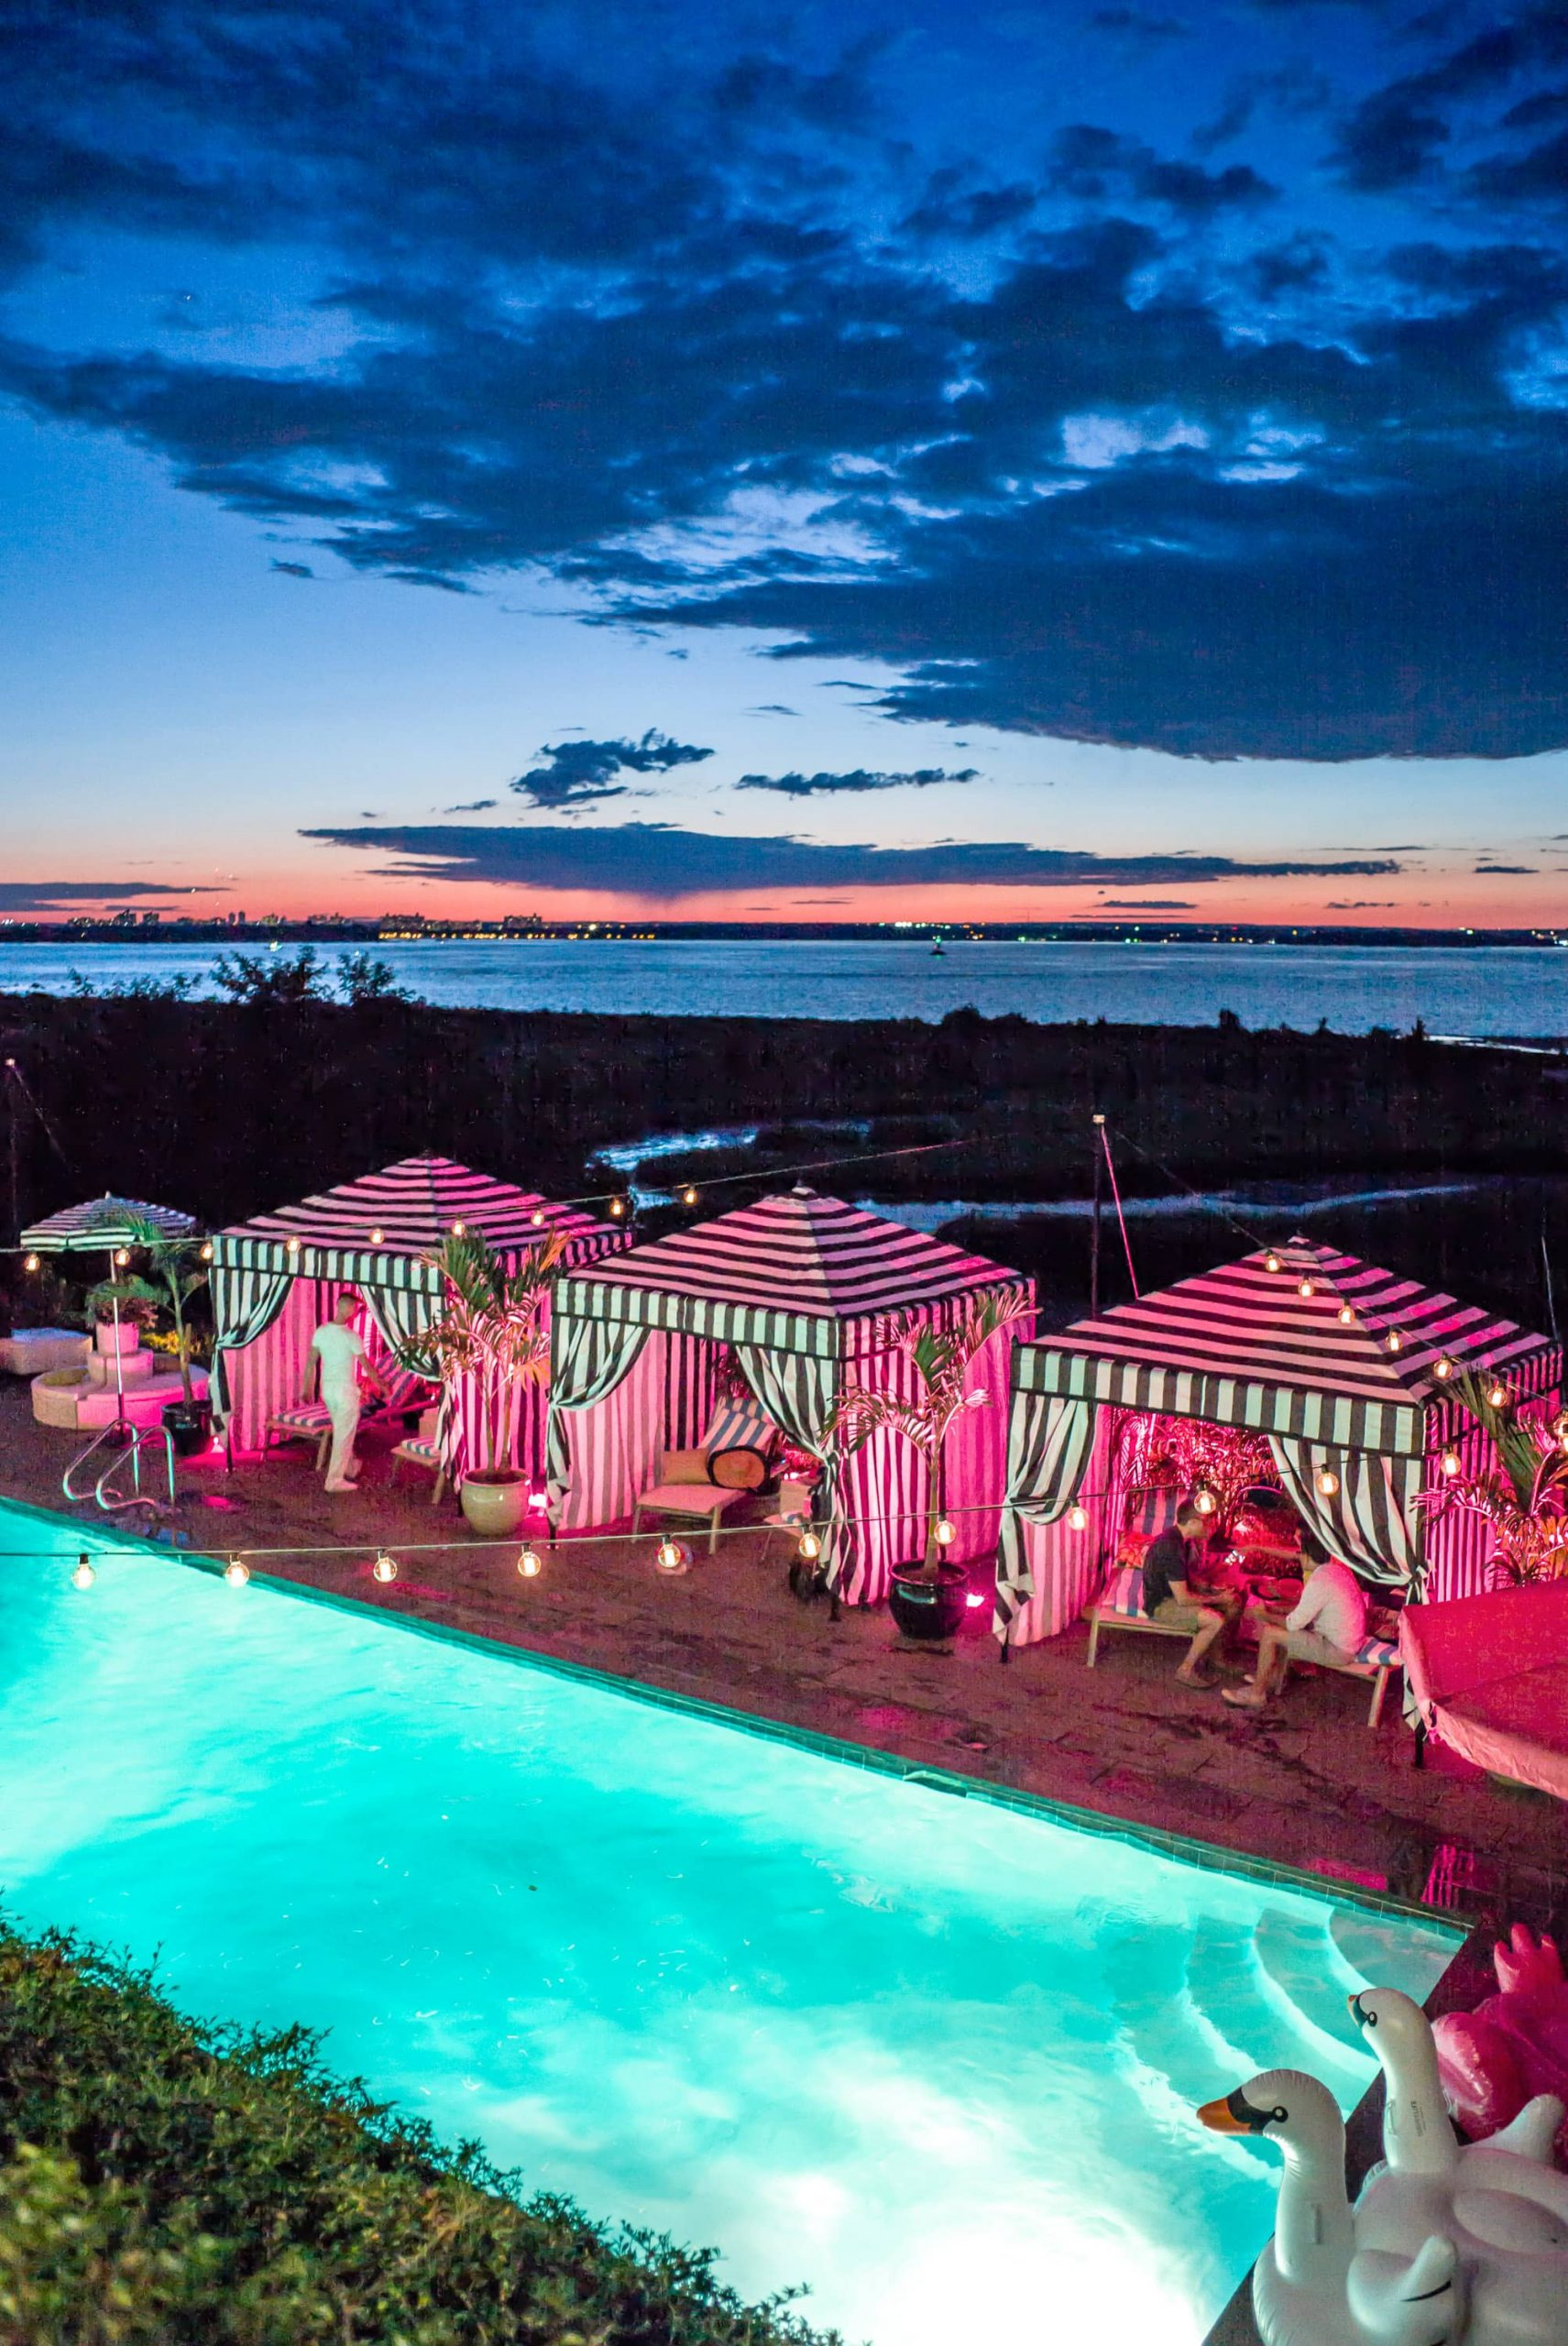 Saint Tropez with pink lightsat this first birthday pool party in the Hamptons | Photo by Cava Photo